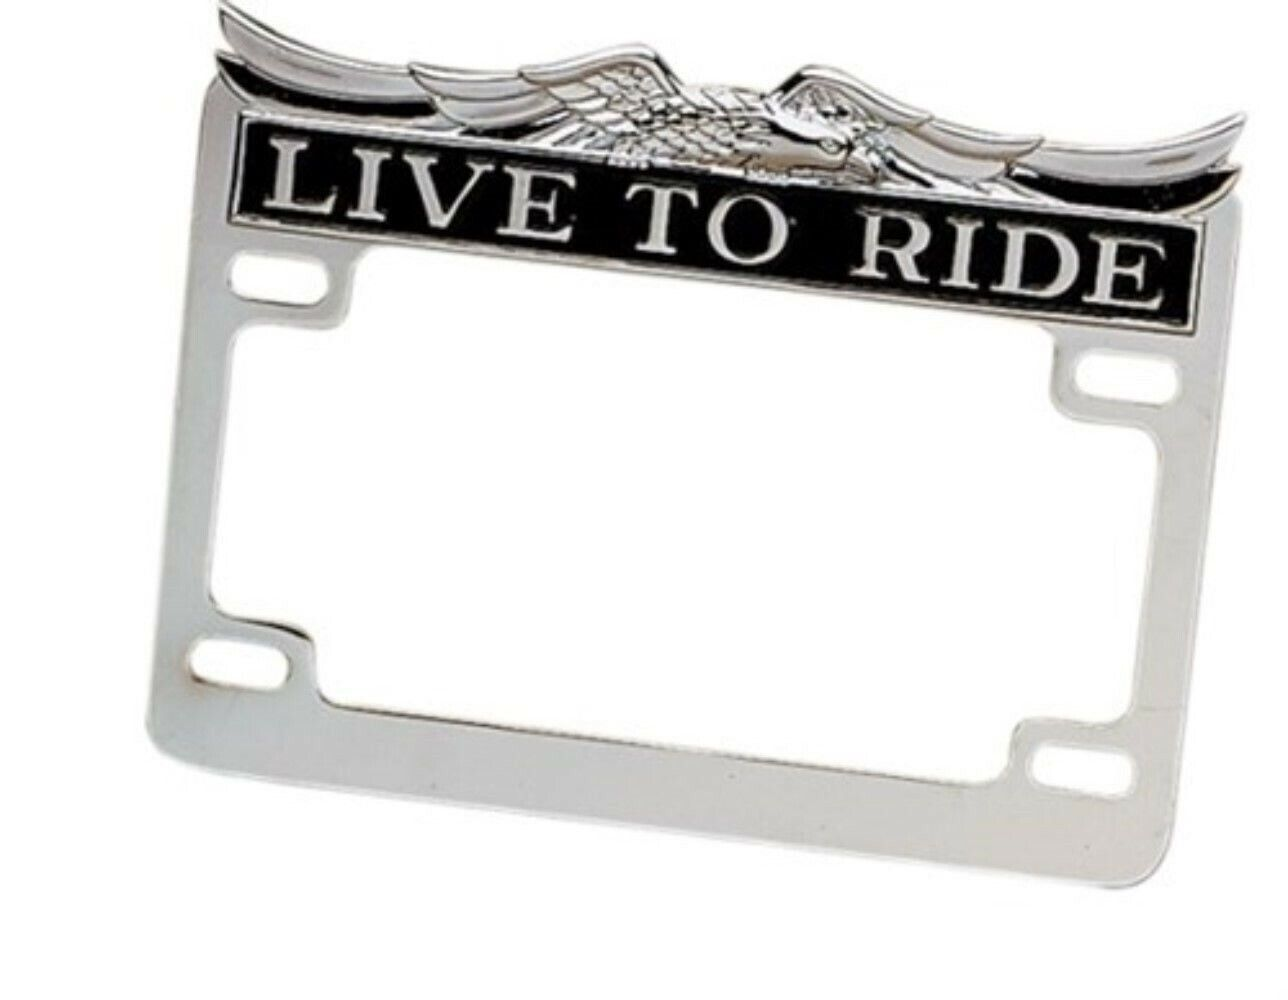 LIVE TO RIDE BLK CHROME 3D AMERICAN EAGLE TOP MOTORCYCLE LICENSE PLATE FRAME